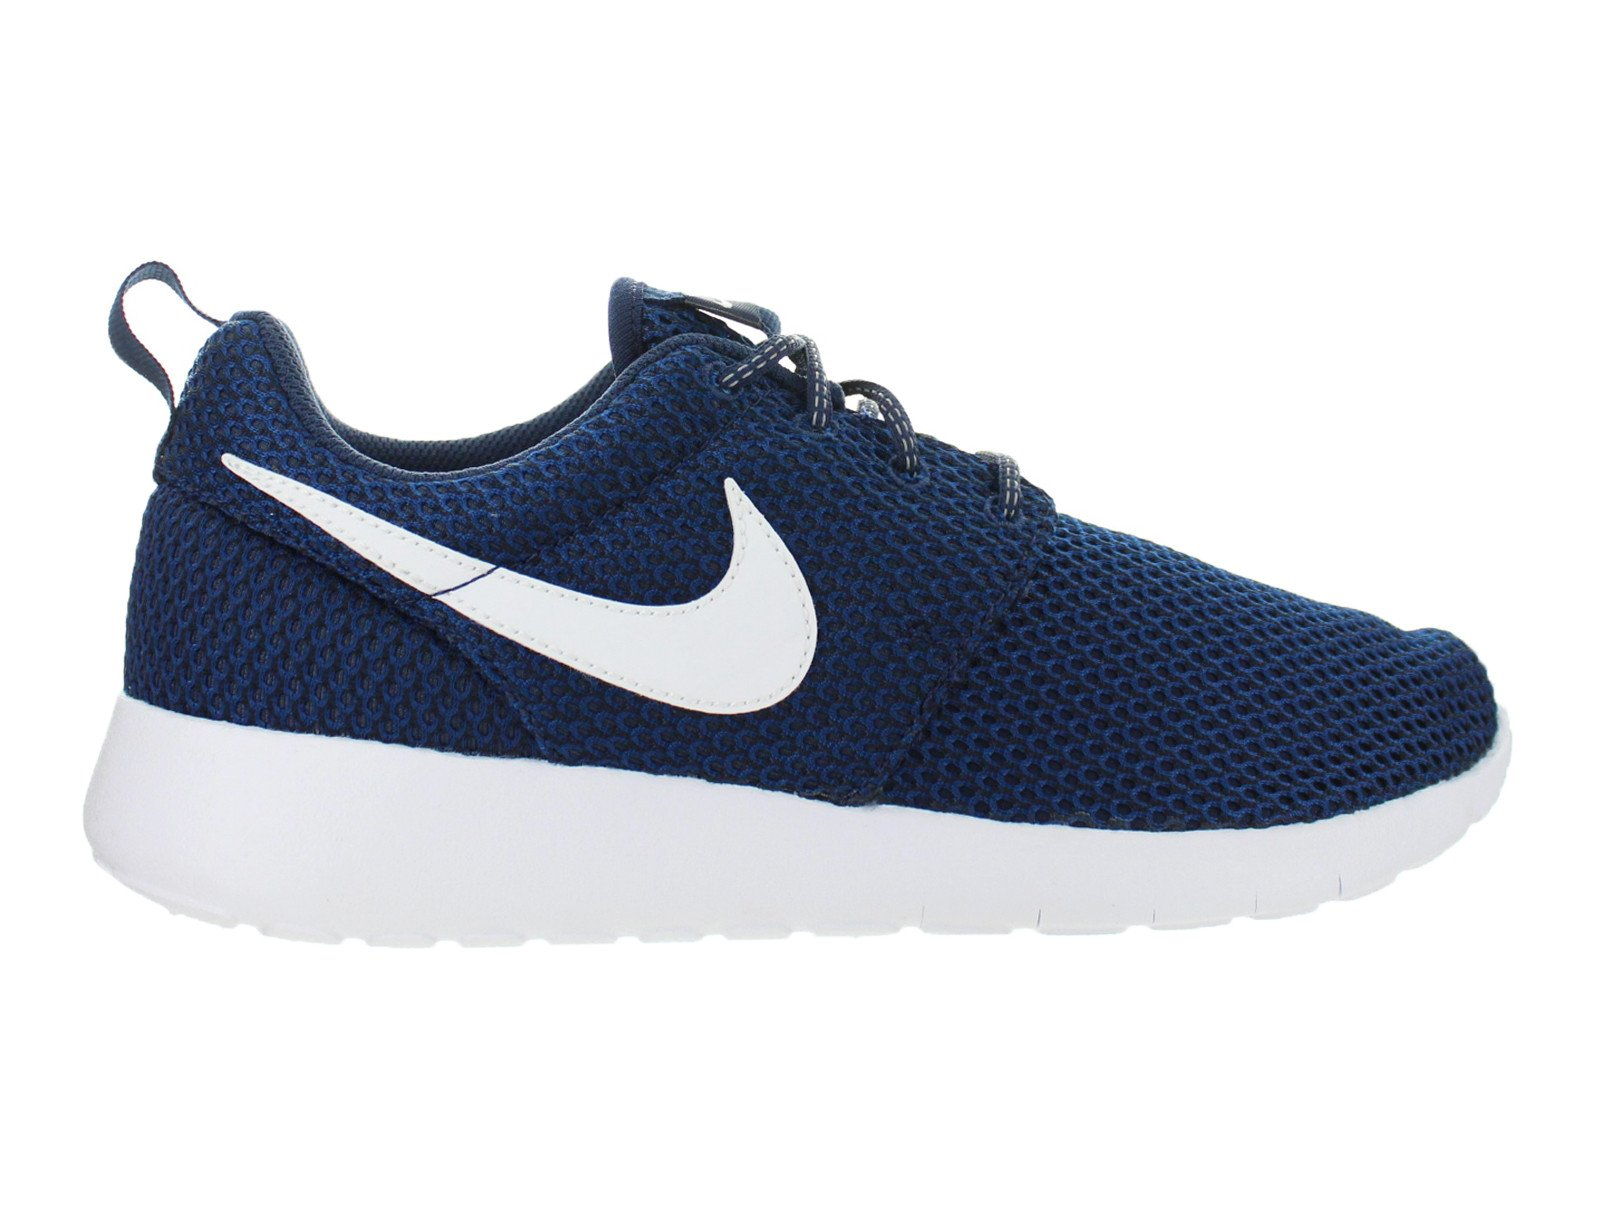 super popular 56421 791e0 ... greece nike kids nike roshe one gs midnight navy white gym blue black  8c65e 2fa2a